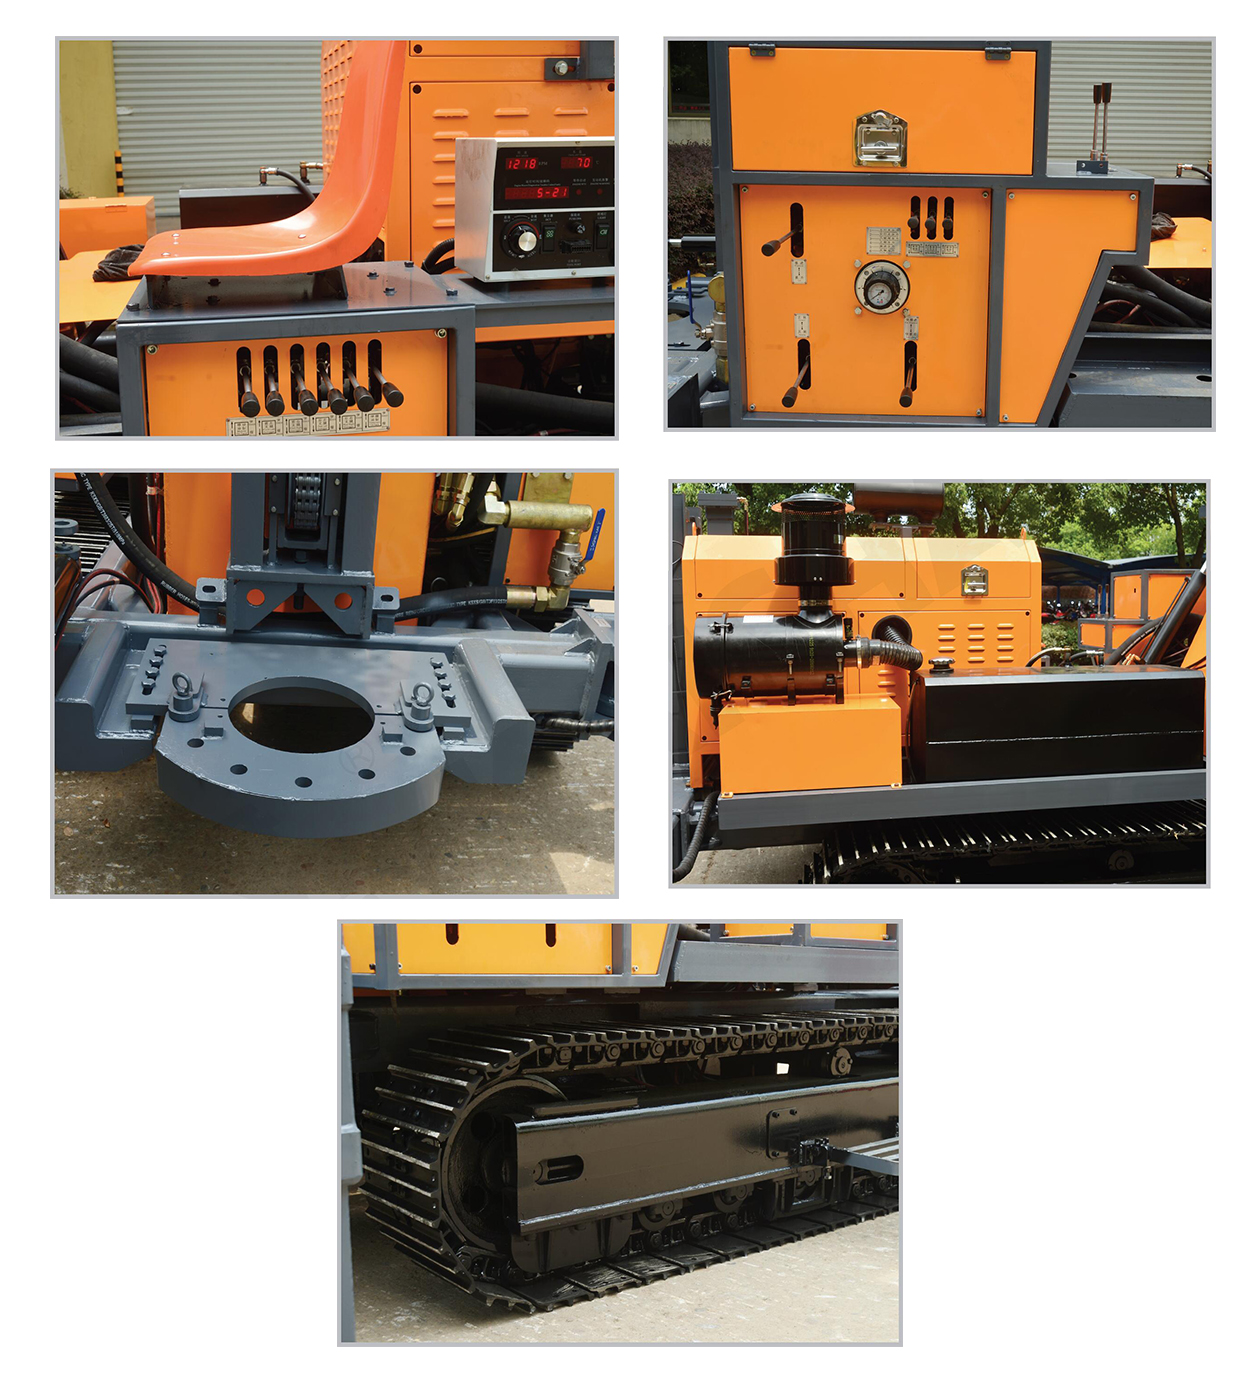 KW400 Kaishan brand efficient multi-functional Portable Crawler Water Well Drilling Rig Machine